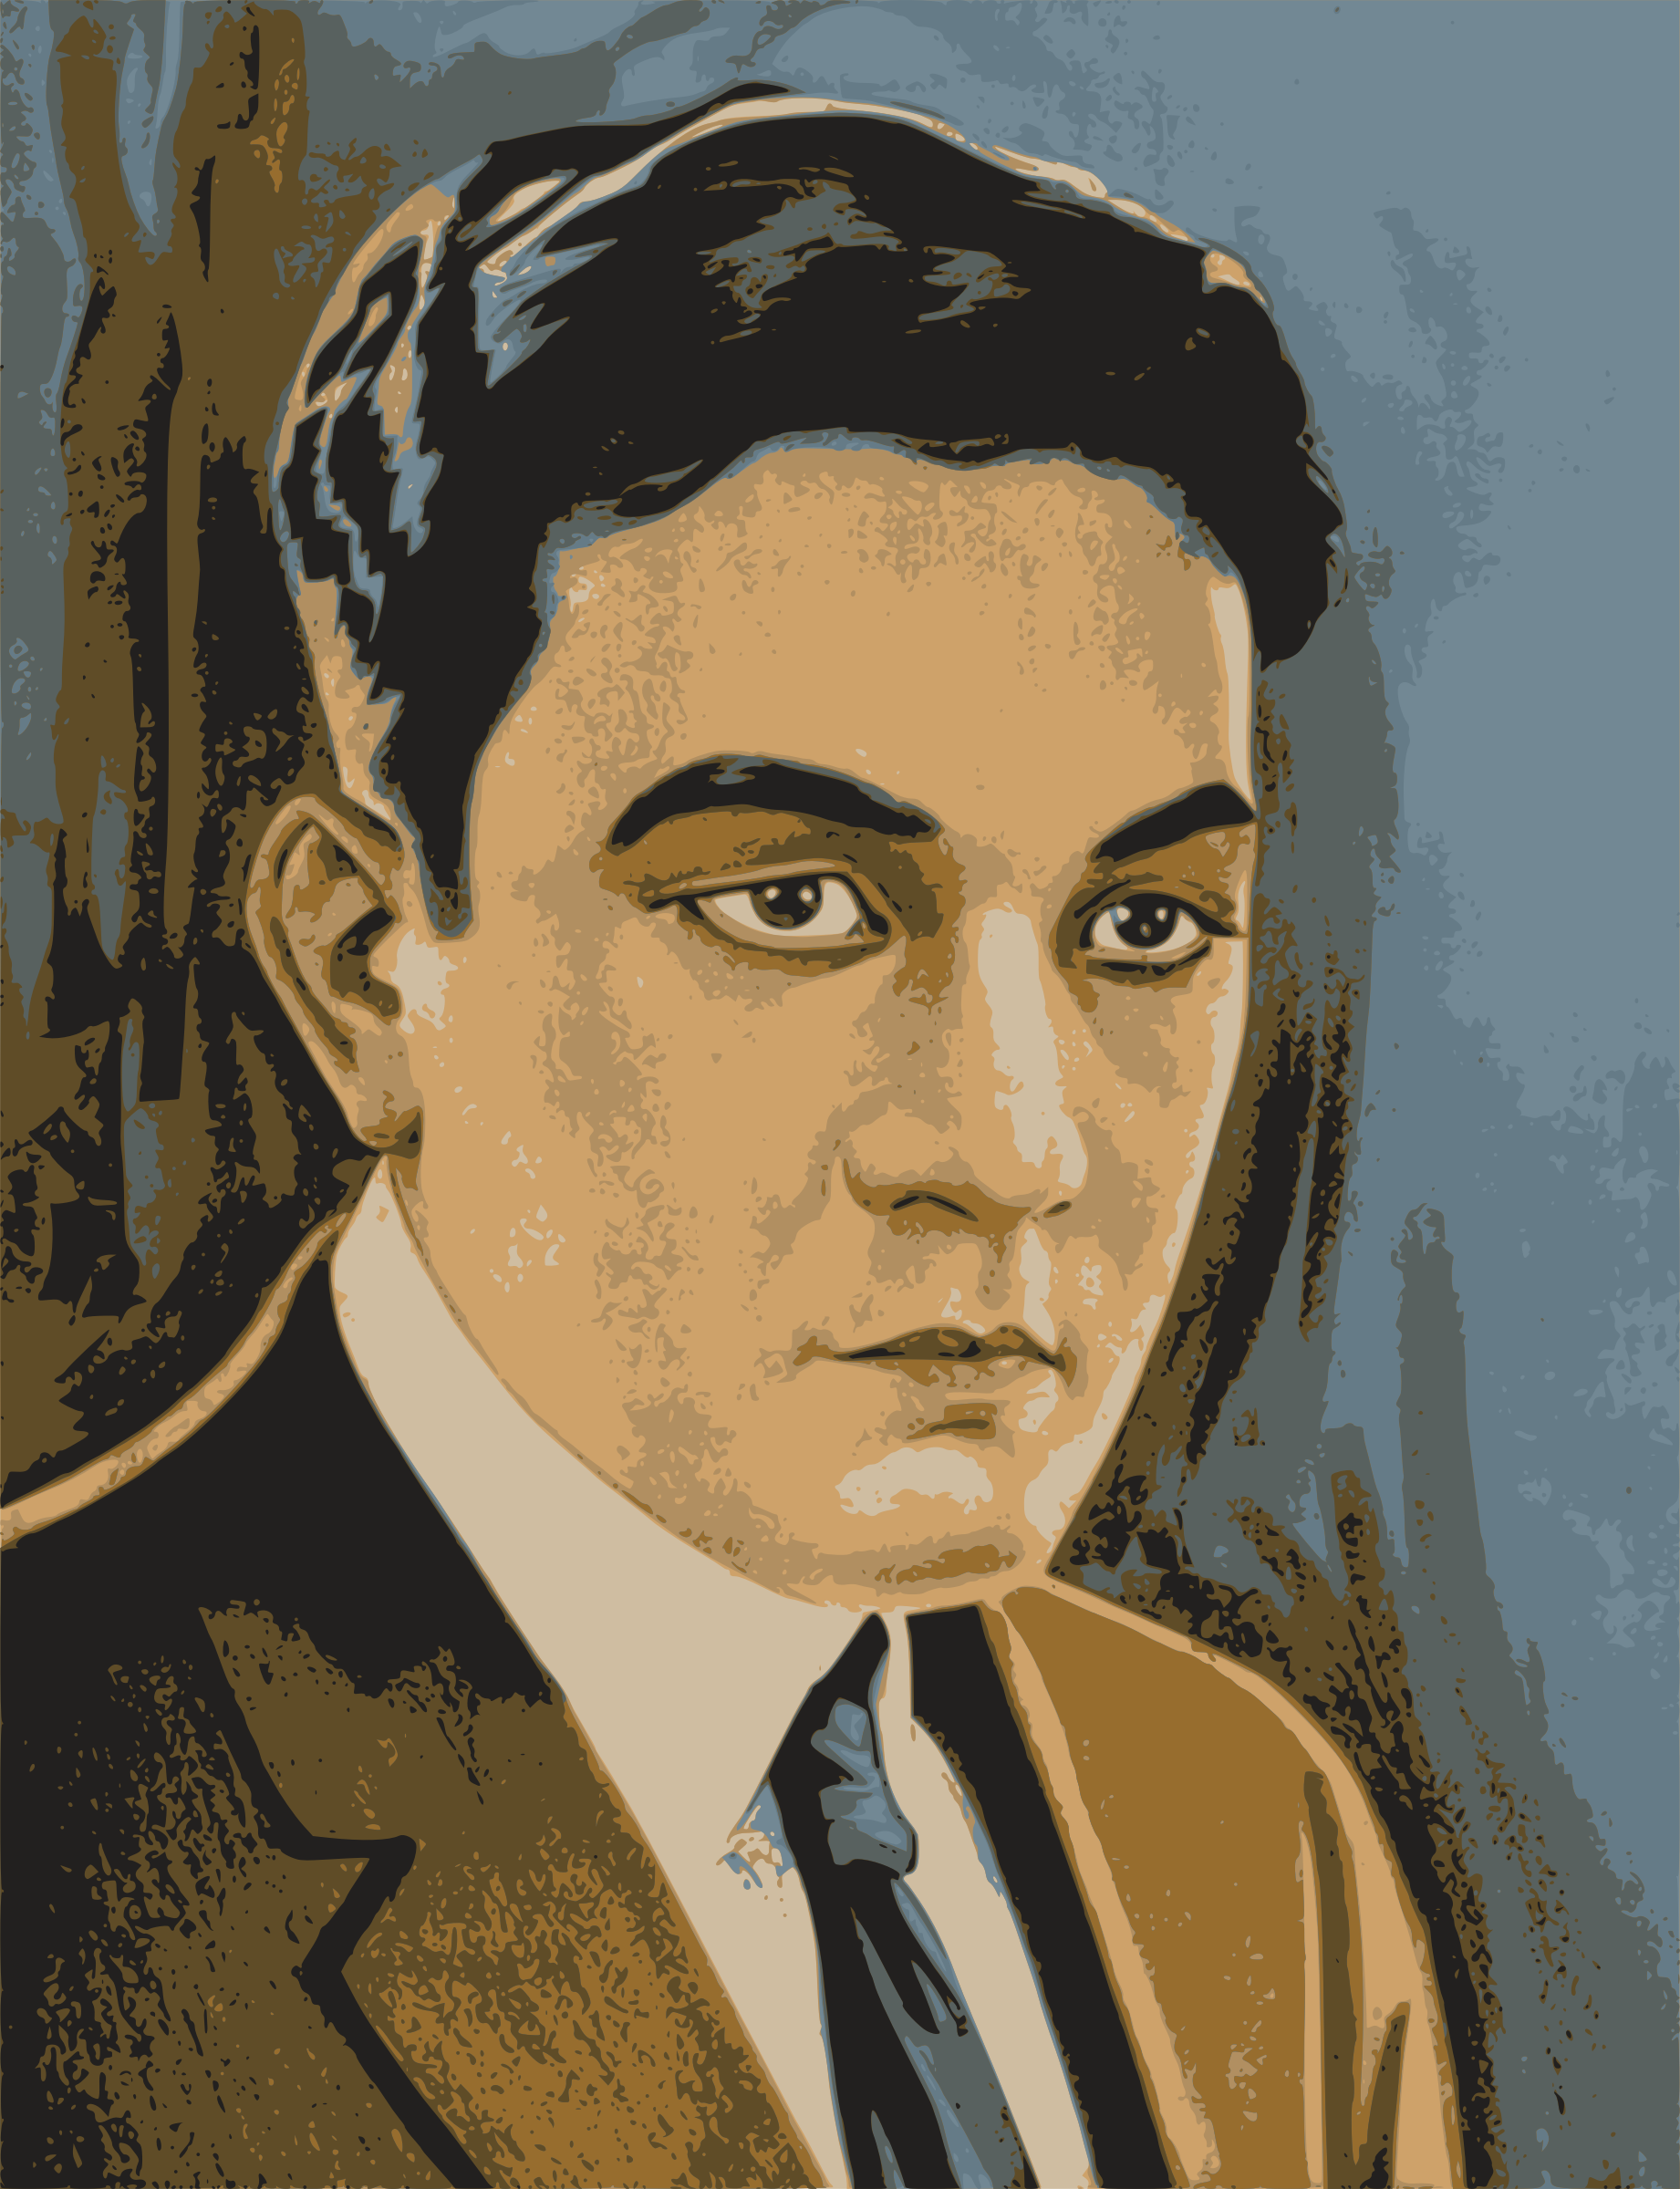 Sessue Hayakawa by j4p4n